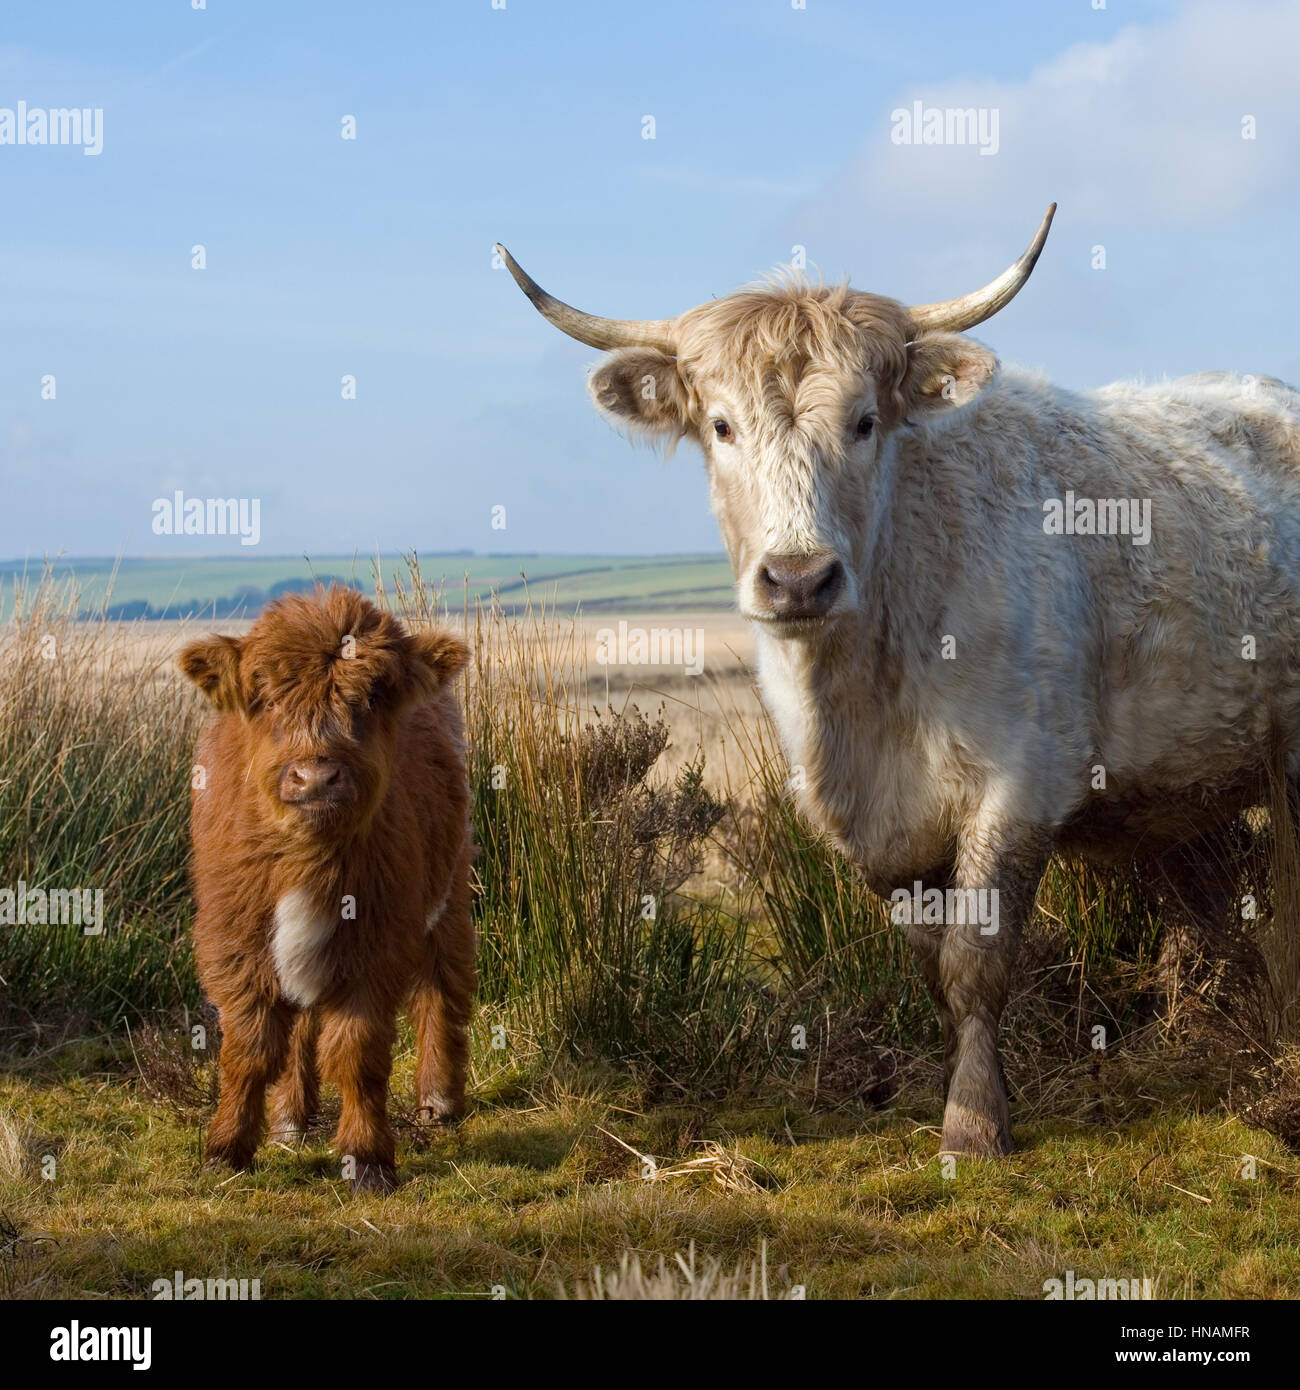 cow and calf - Stock Image